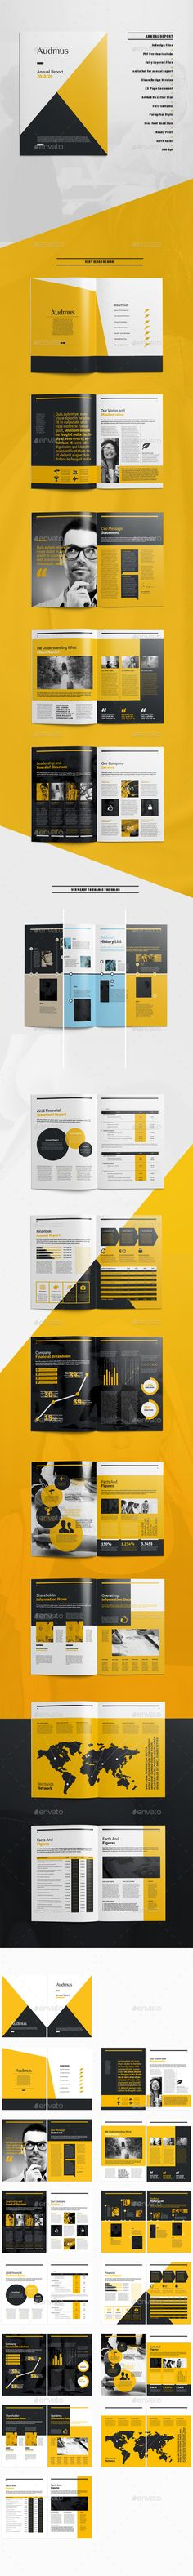 Kinney Proposal Proposal templates and Proposals - business proposal software free download